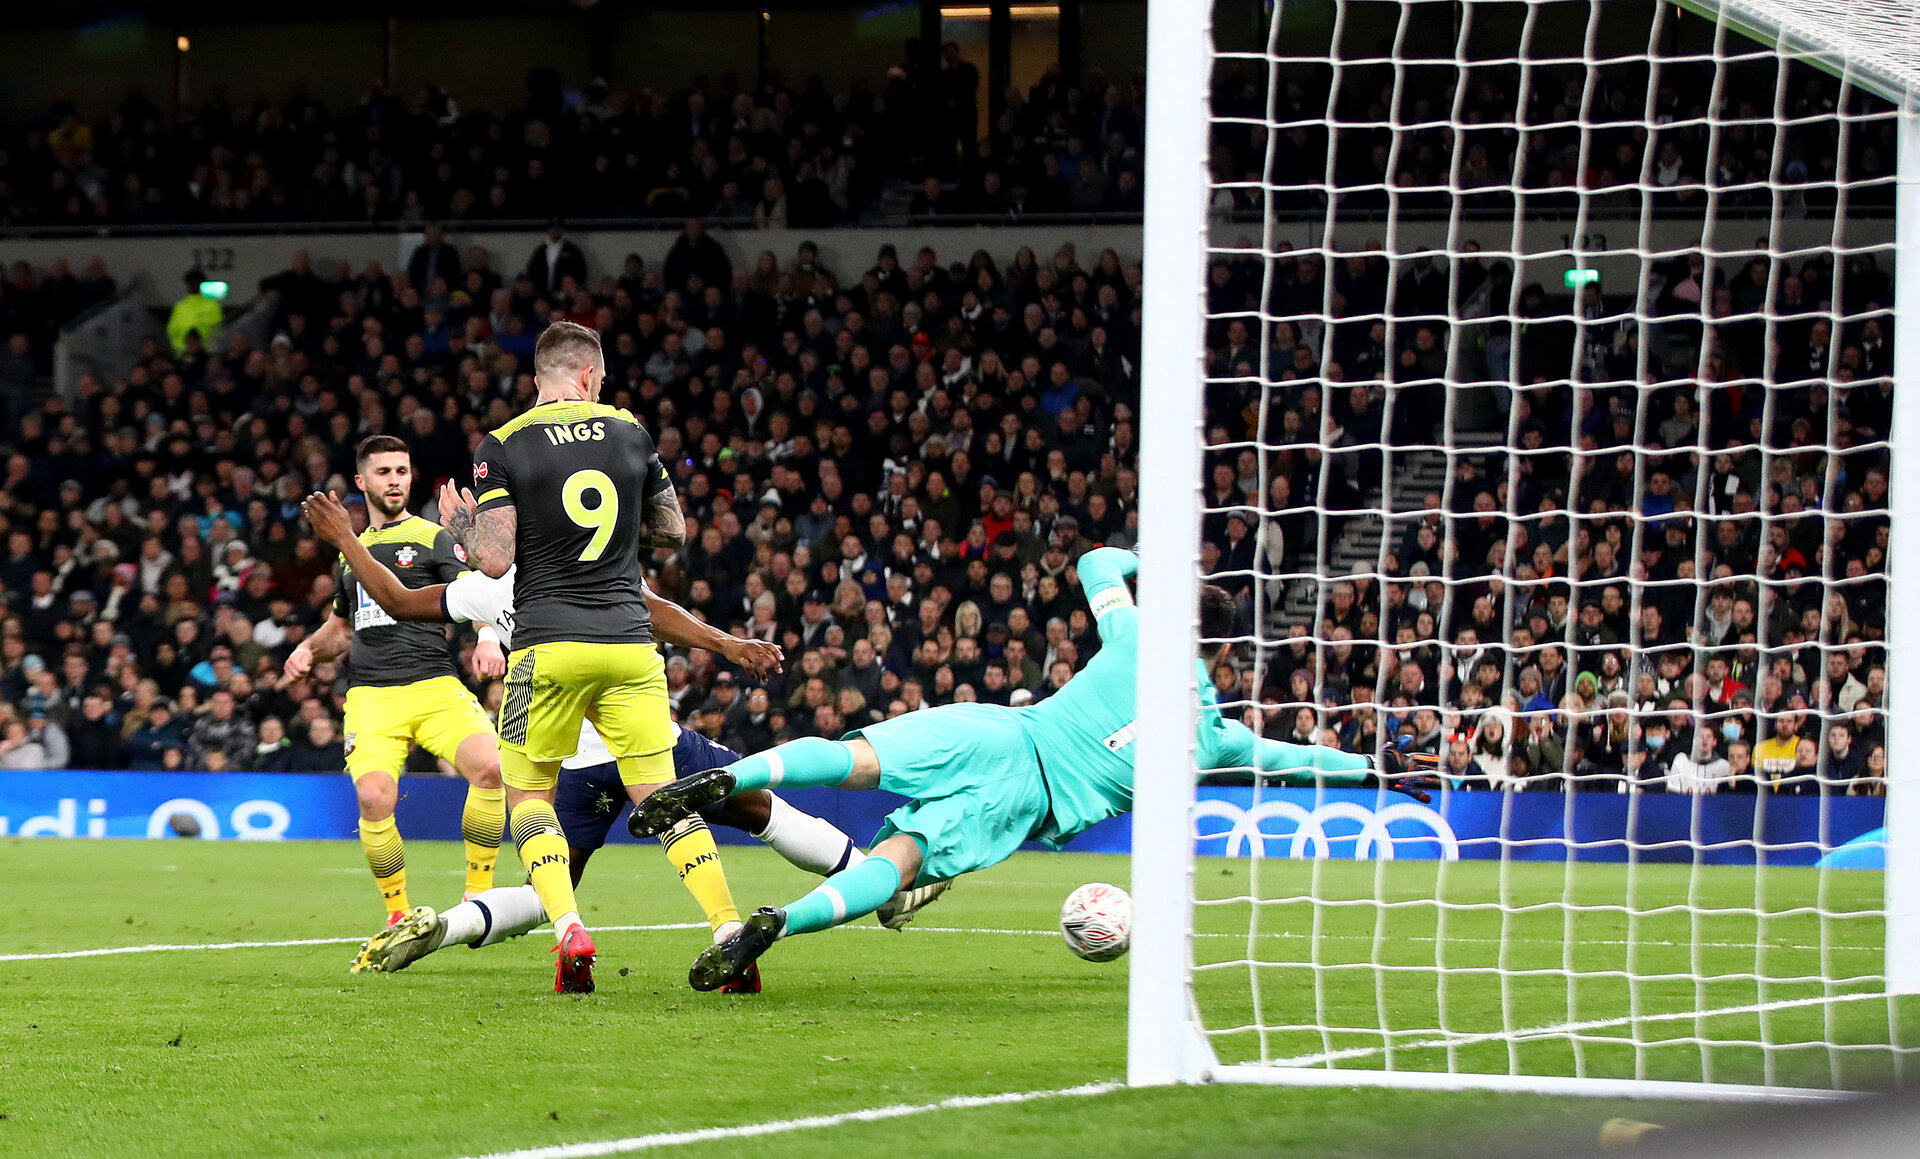 LONDON, ENGLAND - FEBRUARY 05: Shane Long(L) of Southampton scores to make it 1-1 during the FA Cup Fourth Round Replay match between Tottenham Hotspur and Southampton FC at Tottenham Hotspur Stadium on February 05, 2020 in London, England. (Photo by Matt Watson/SouthamptonFC via Getty Images)